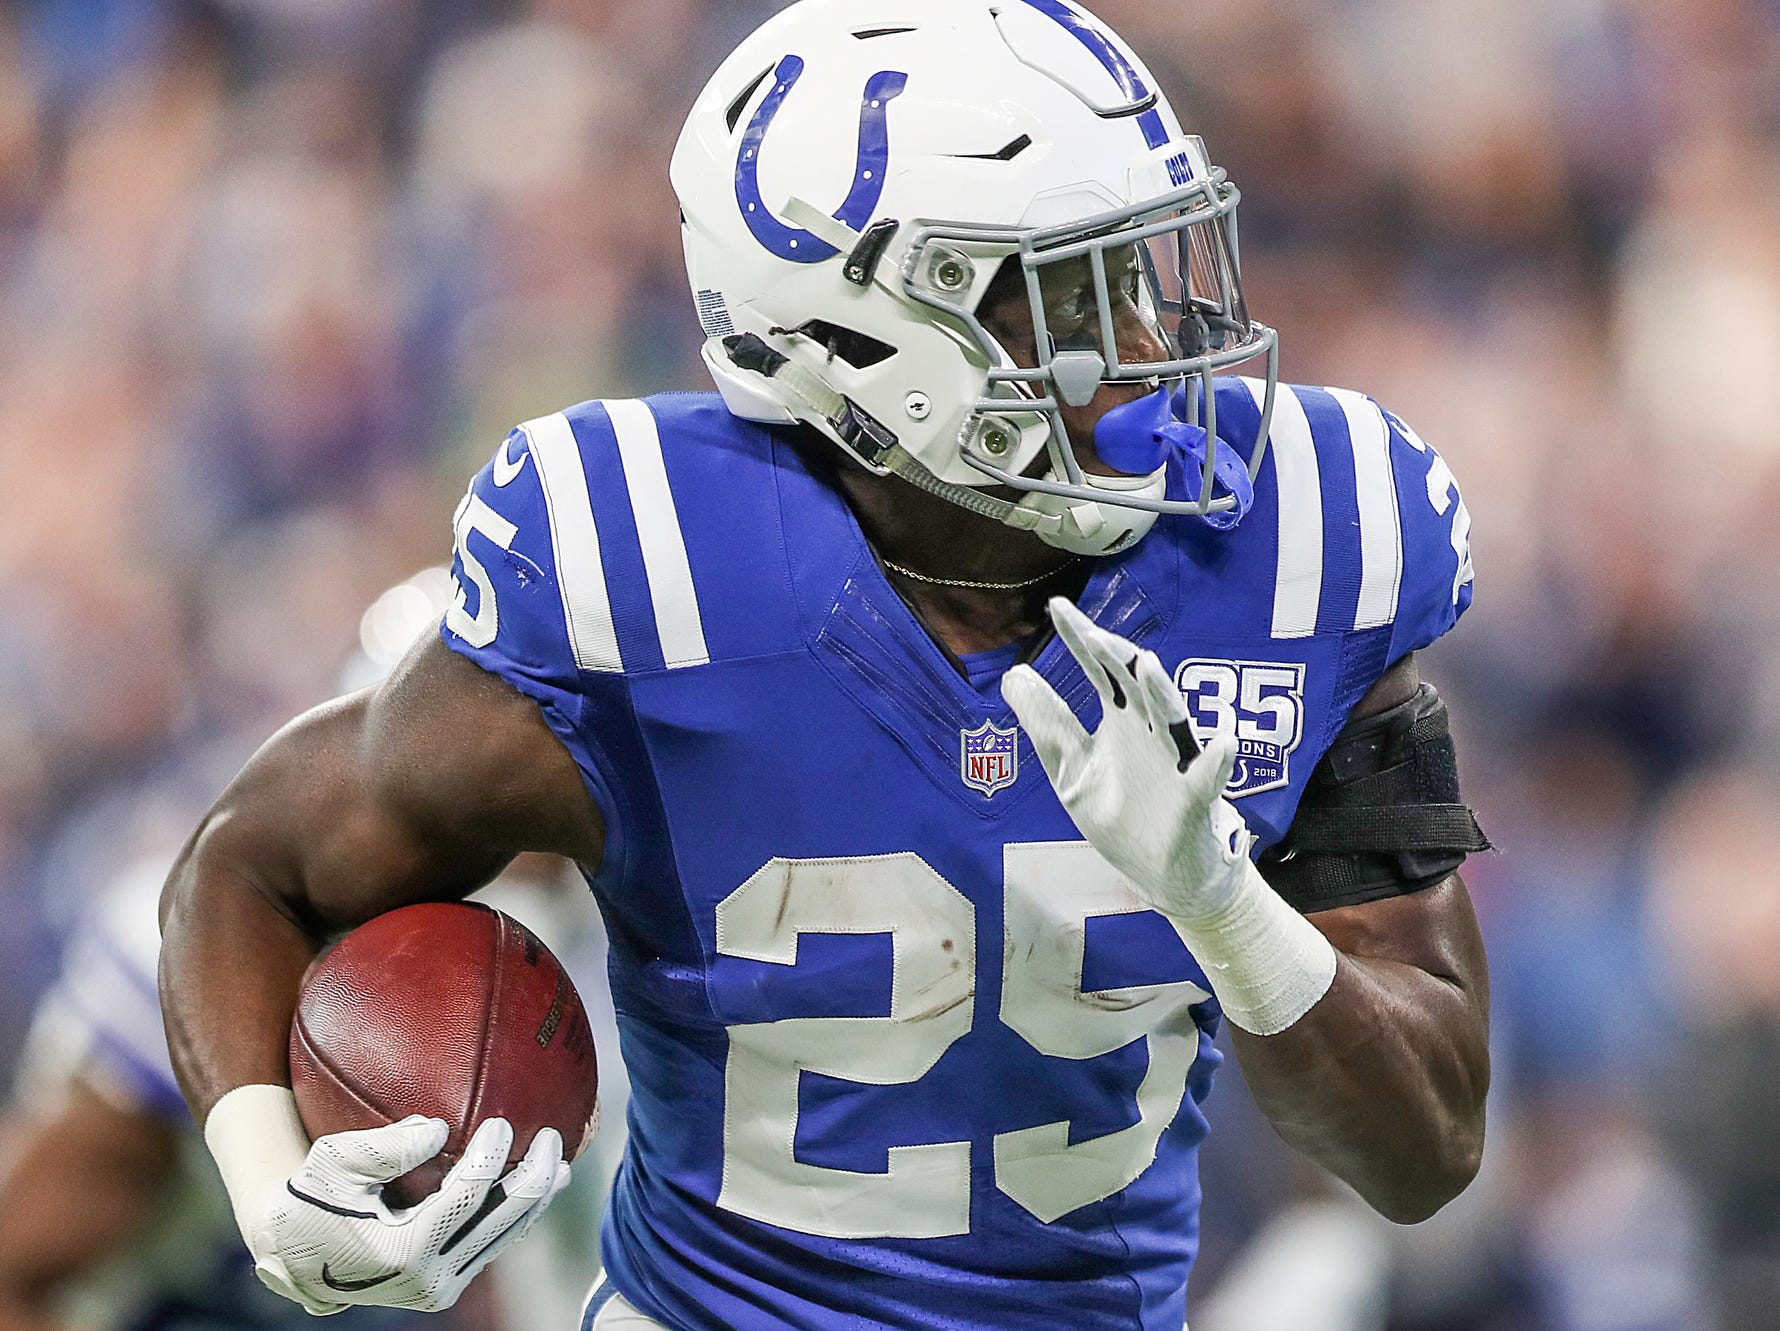 Indianapolis Colts running back Marlon Mack (25) runs the ball in the first half of the game at Lucas Oil Stadium in Indianapolis, Sunday, Dec. 16, 2018. The Colts won, 23-0.